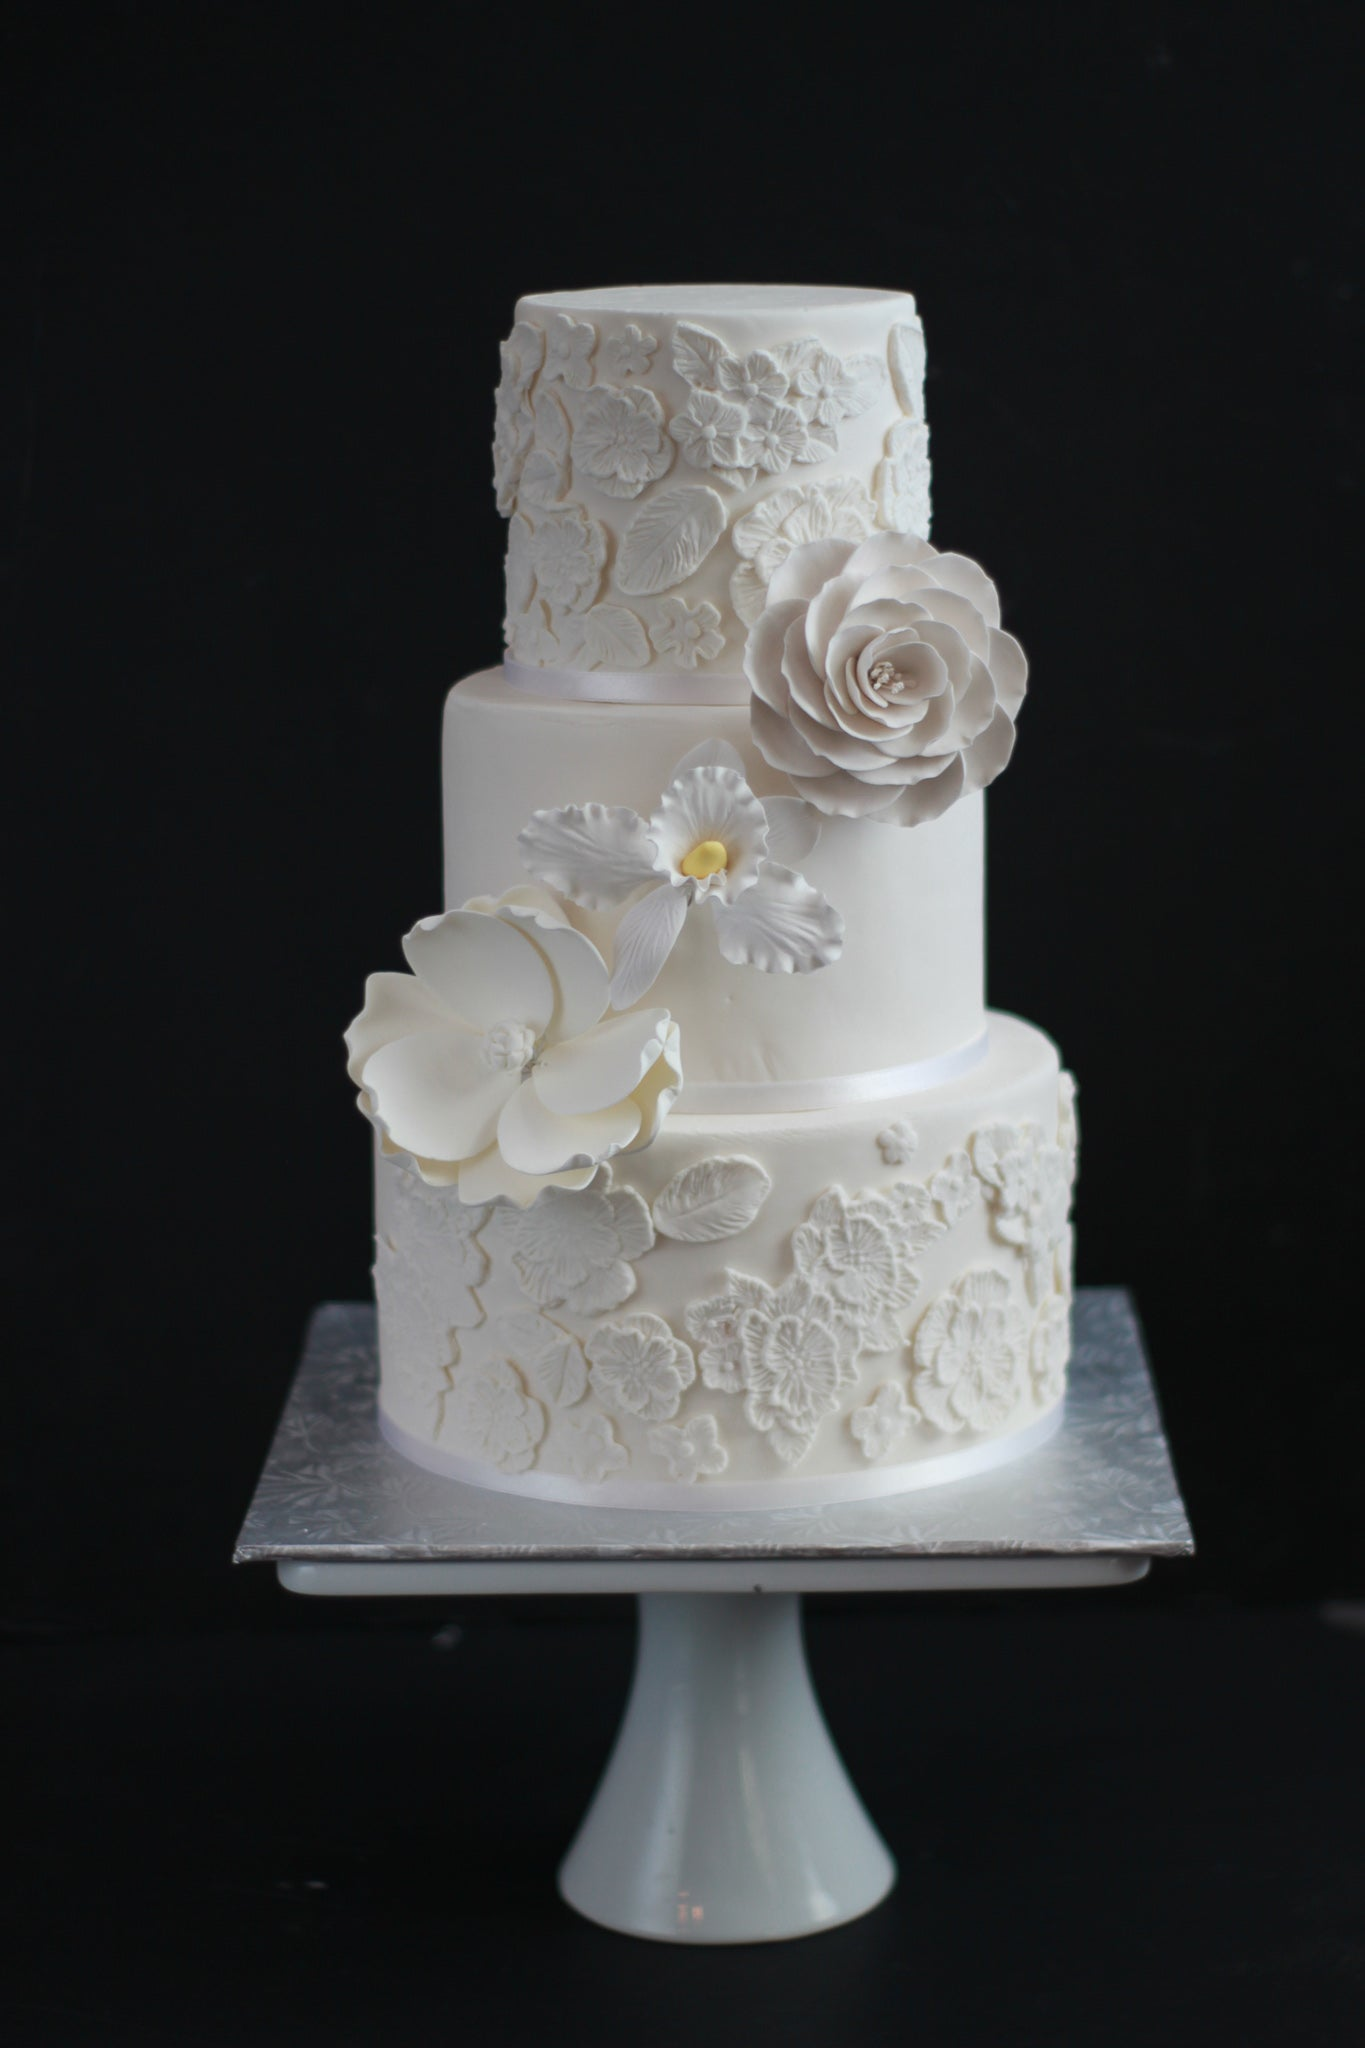 This is an amazing cake that we have in our weddings cakes collection. Our cakes are locally made in Calgary. Search wedding cakes near me to order now!